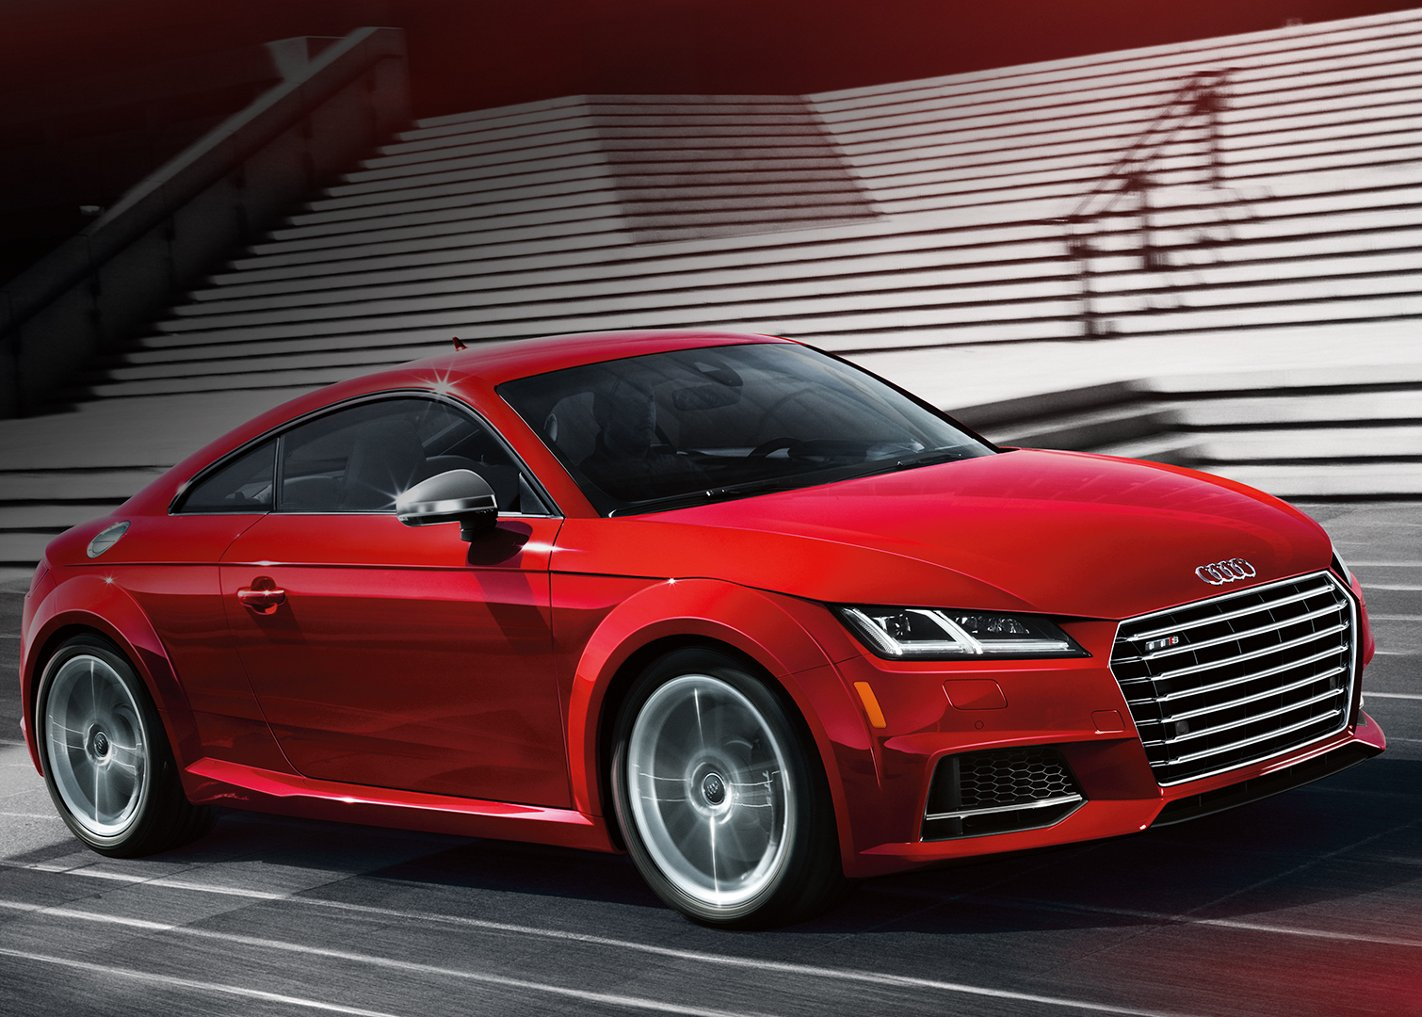 pre audi technik mississauga payment owned used tiptronic vehicle in quattro en lease inventory